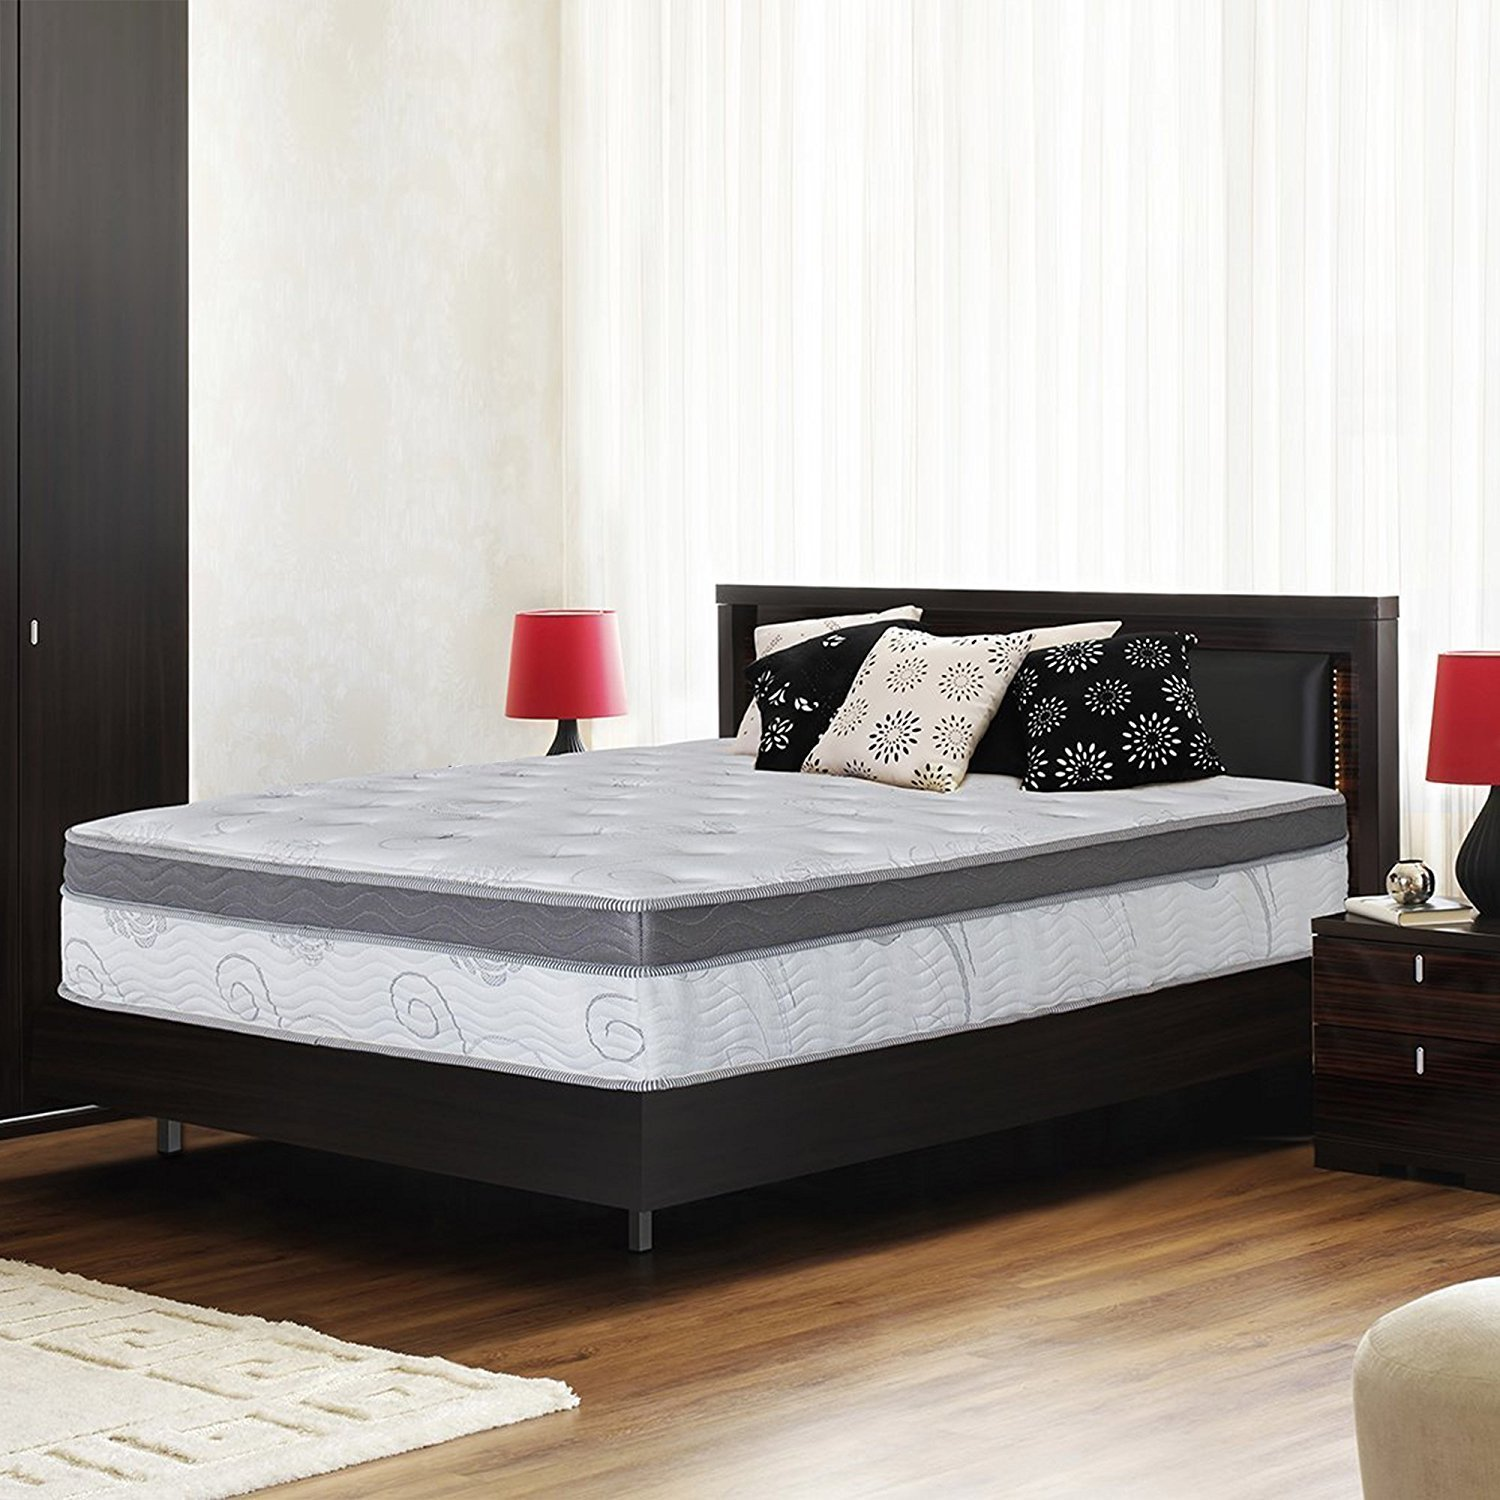 Galaxy Hybrid Gel Infused Memory Foam and Pocket Spring Mattress